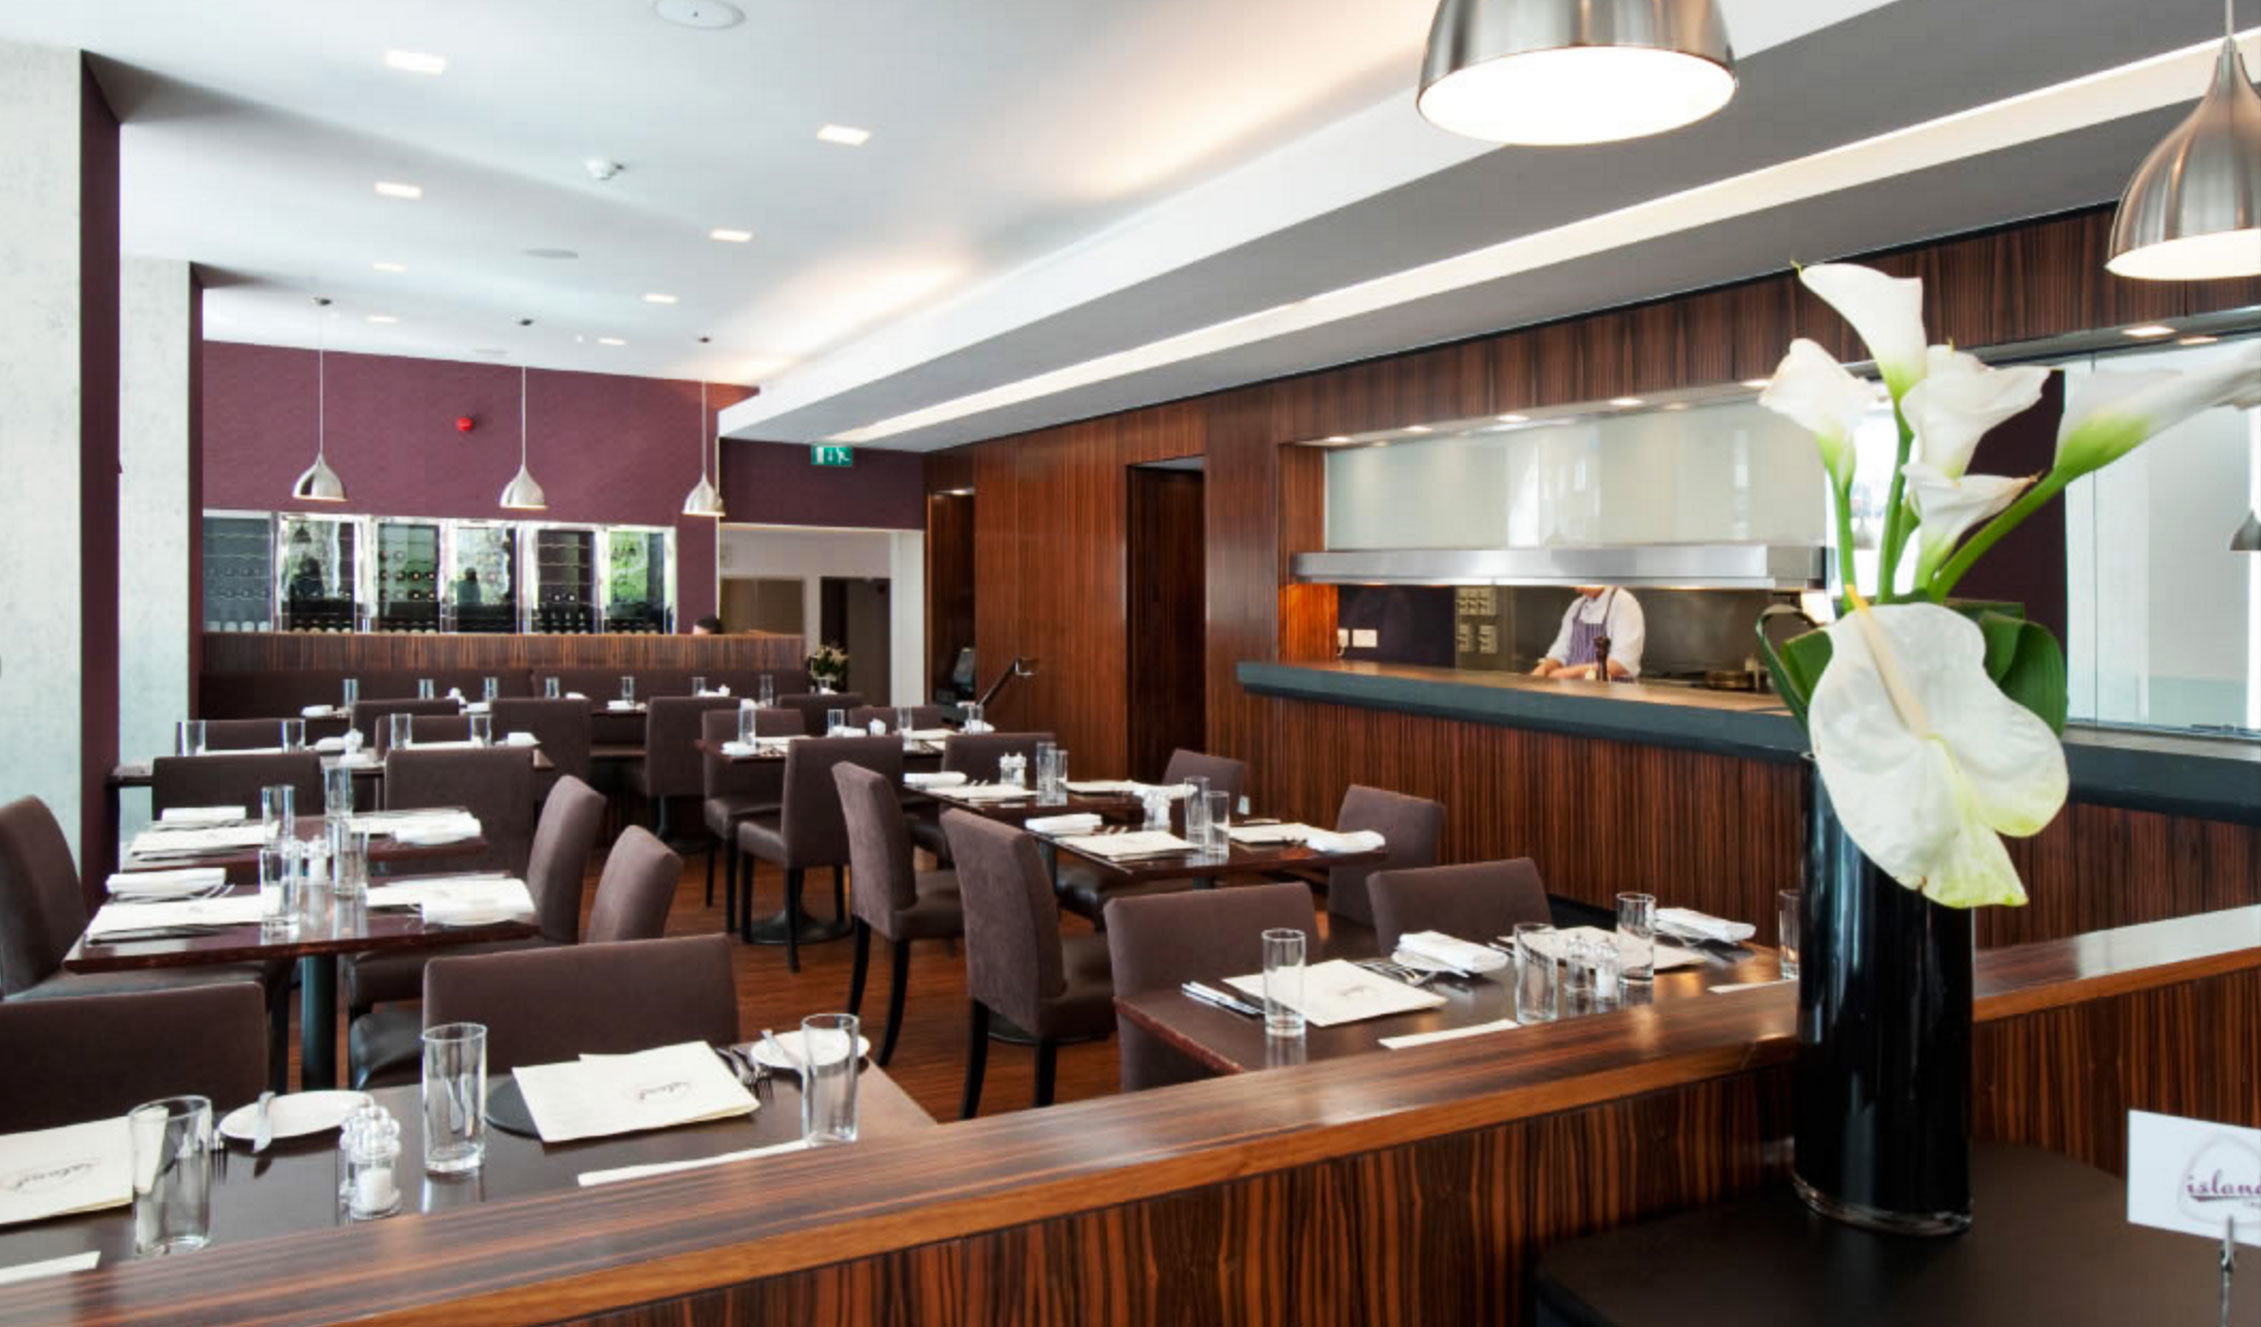 restaurant function hall conference hall cafeteria Island Modern Bar